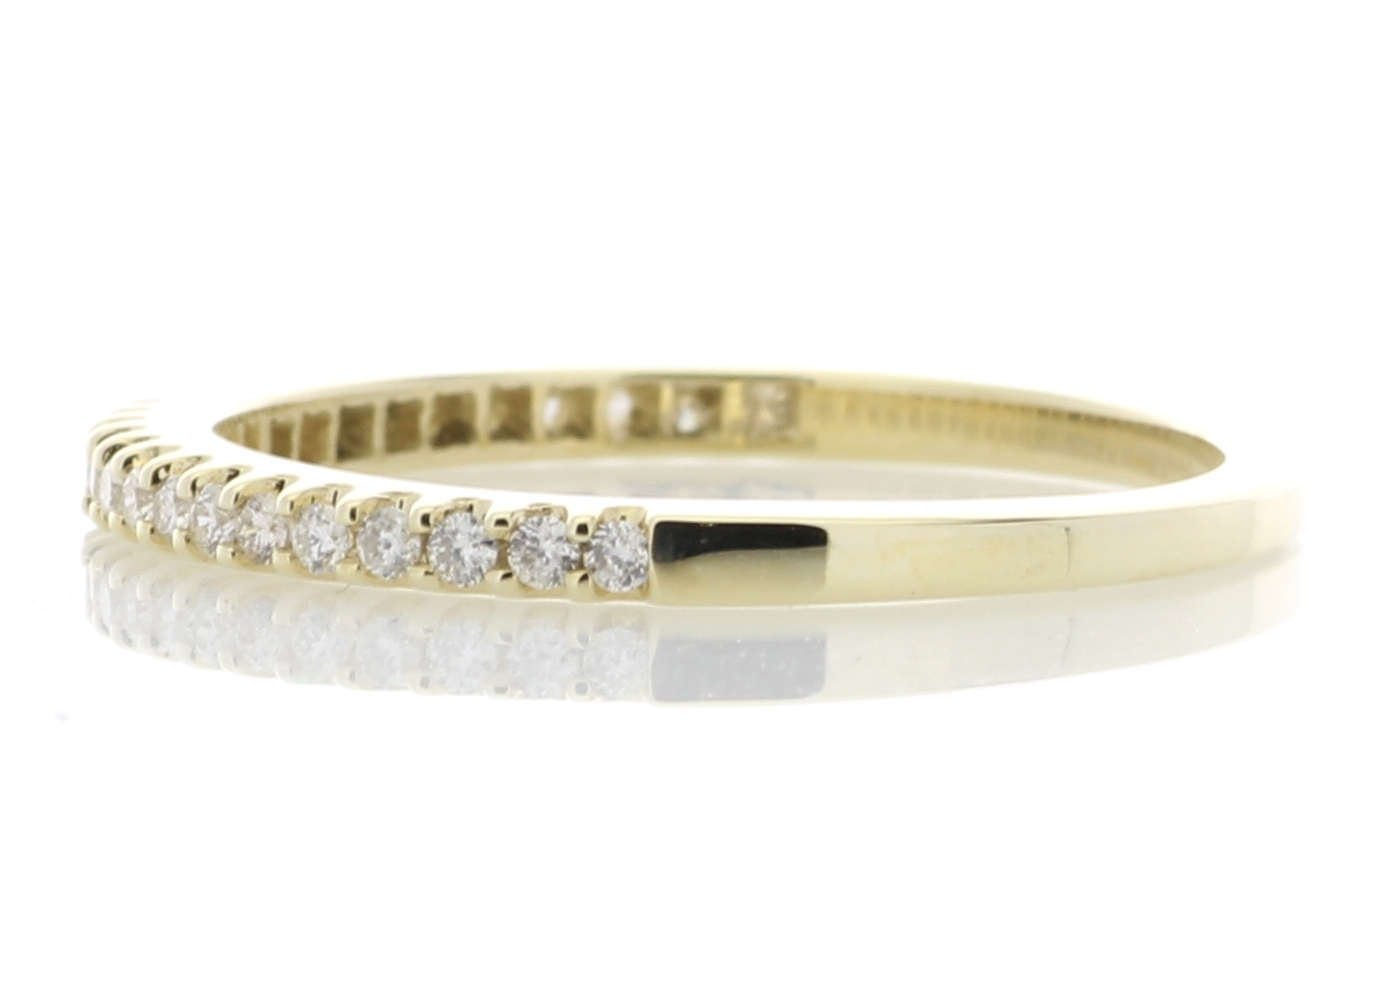 9ct Yellow Gold Diamond Half Eternity Ring 0.25 Carats - Image 3 of 4